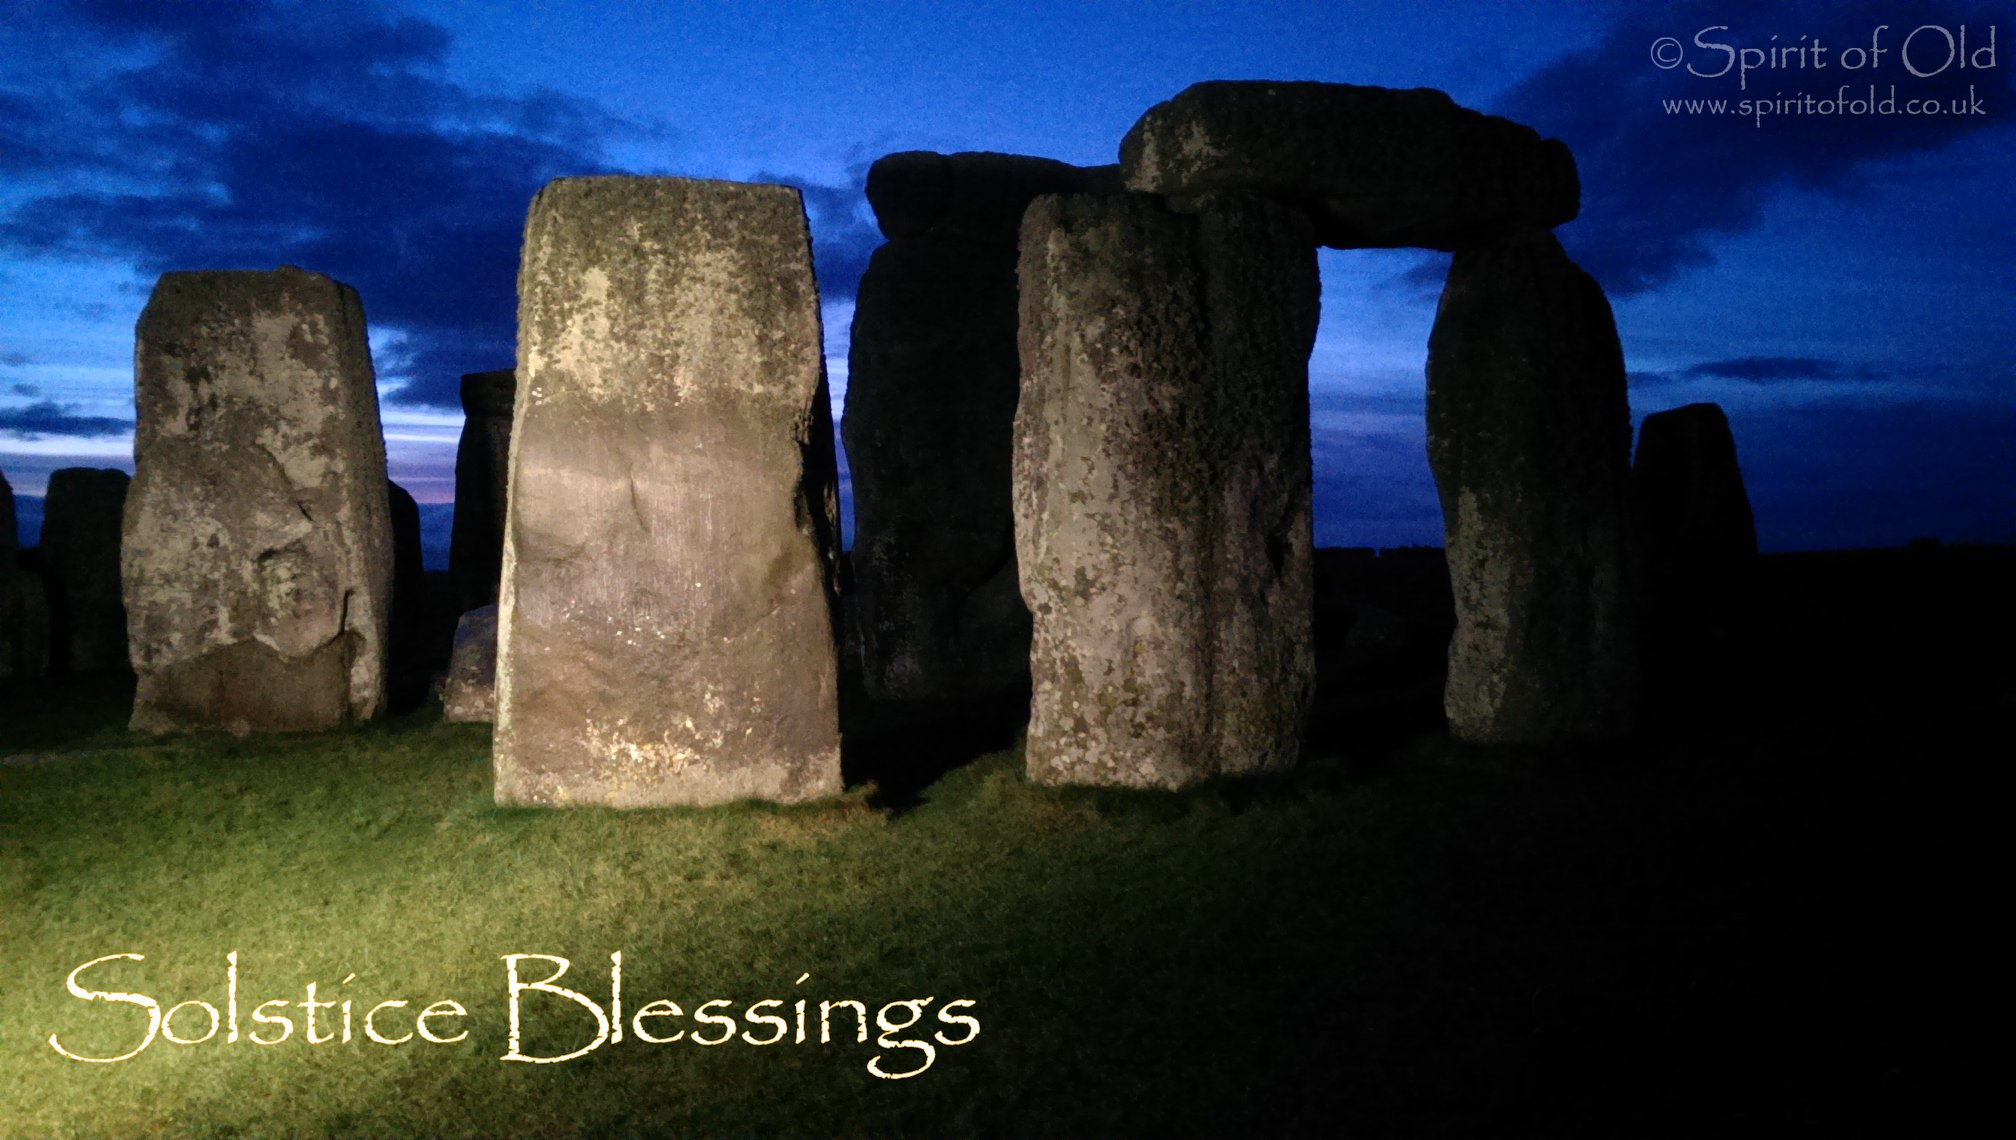 Spirit of Old Page Liked · 14 hrs · Solstice Blessings. We honour the returning of the light!